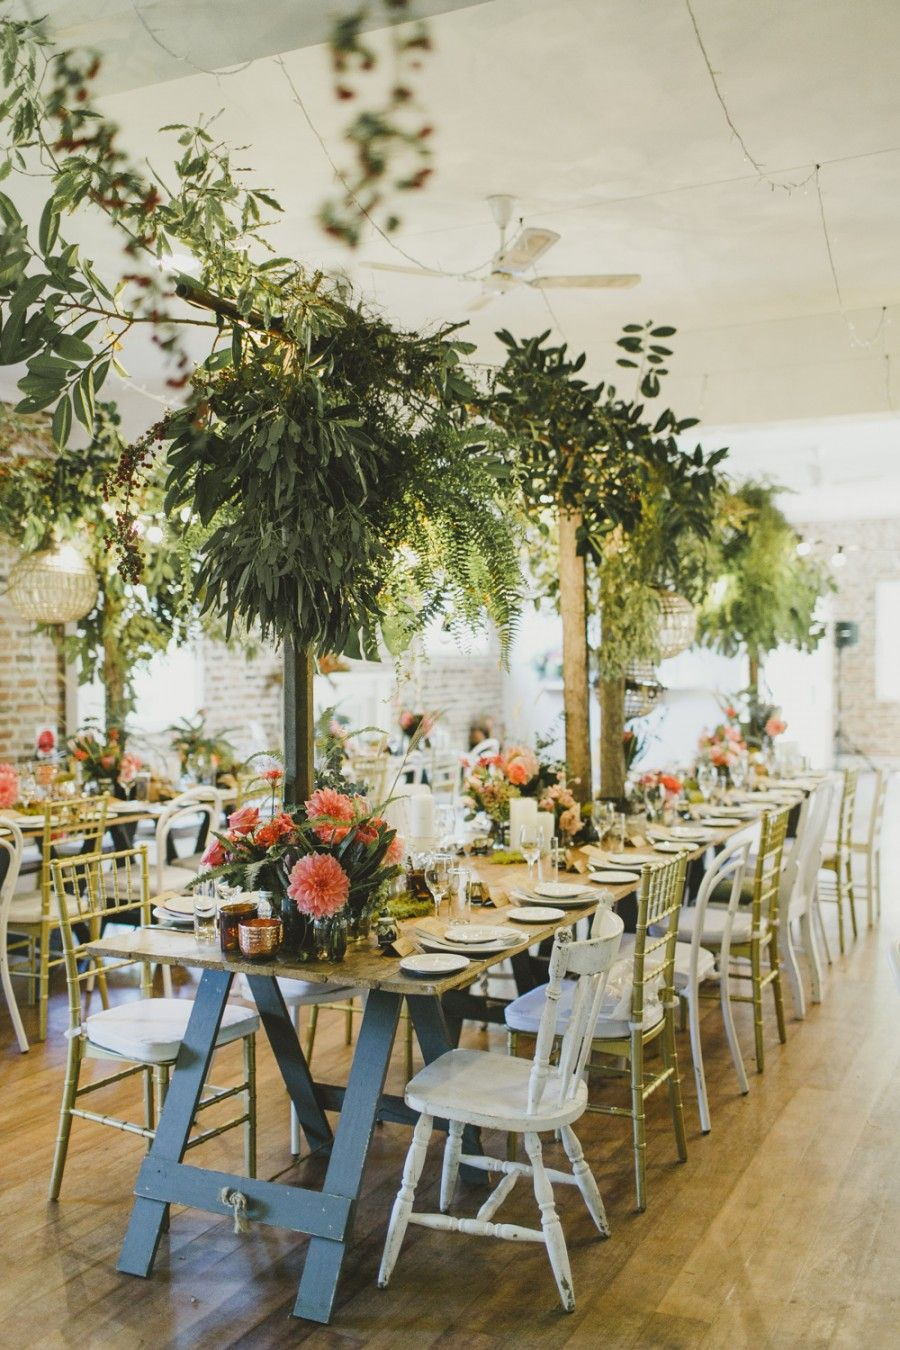 Woodland Wedding At Montrose Berry Farm NSW Nina Claire Photography Styling By She Designs